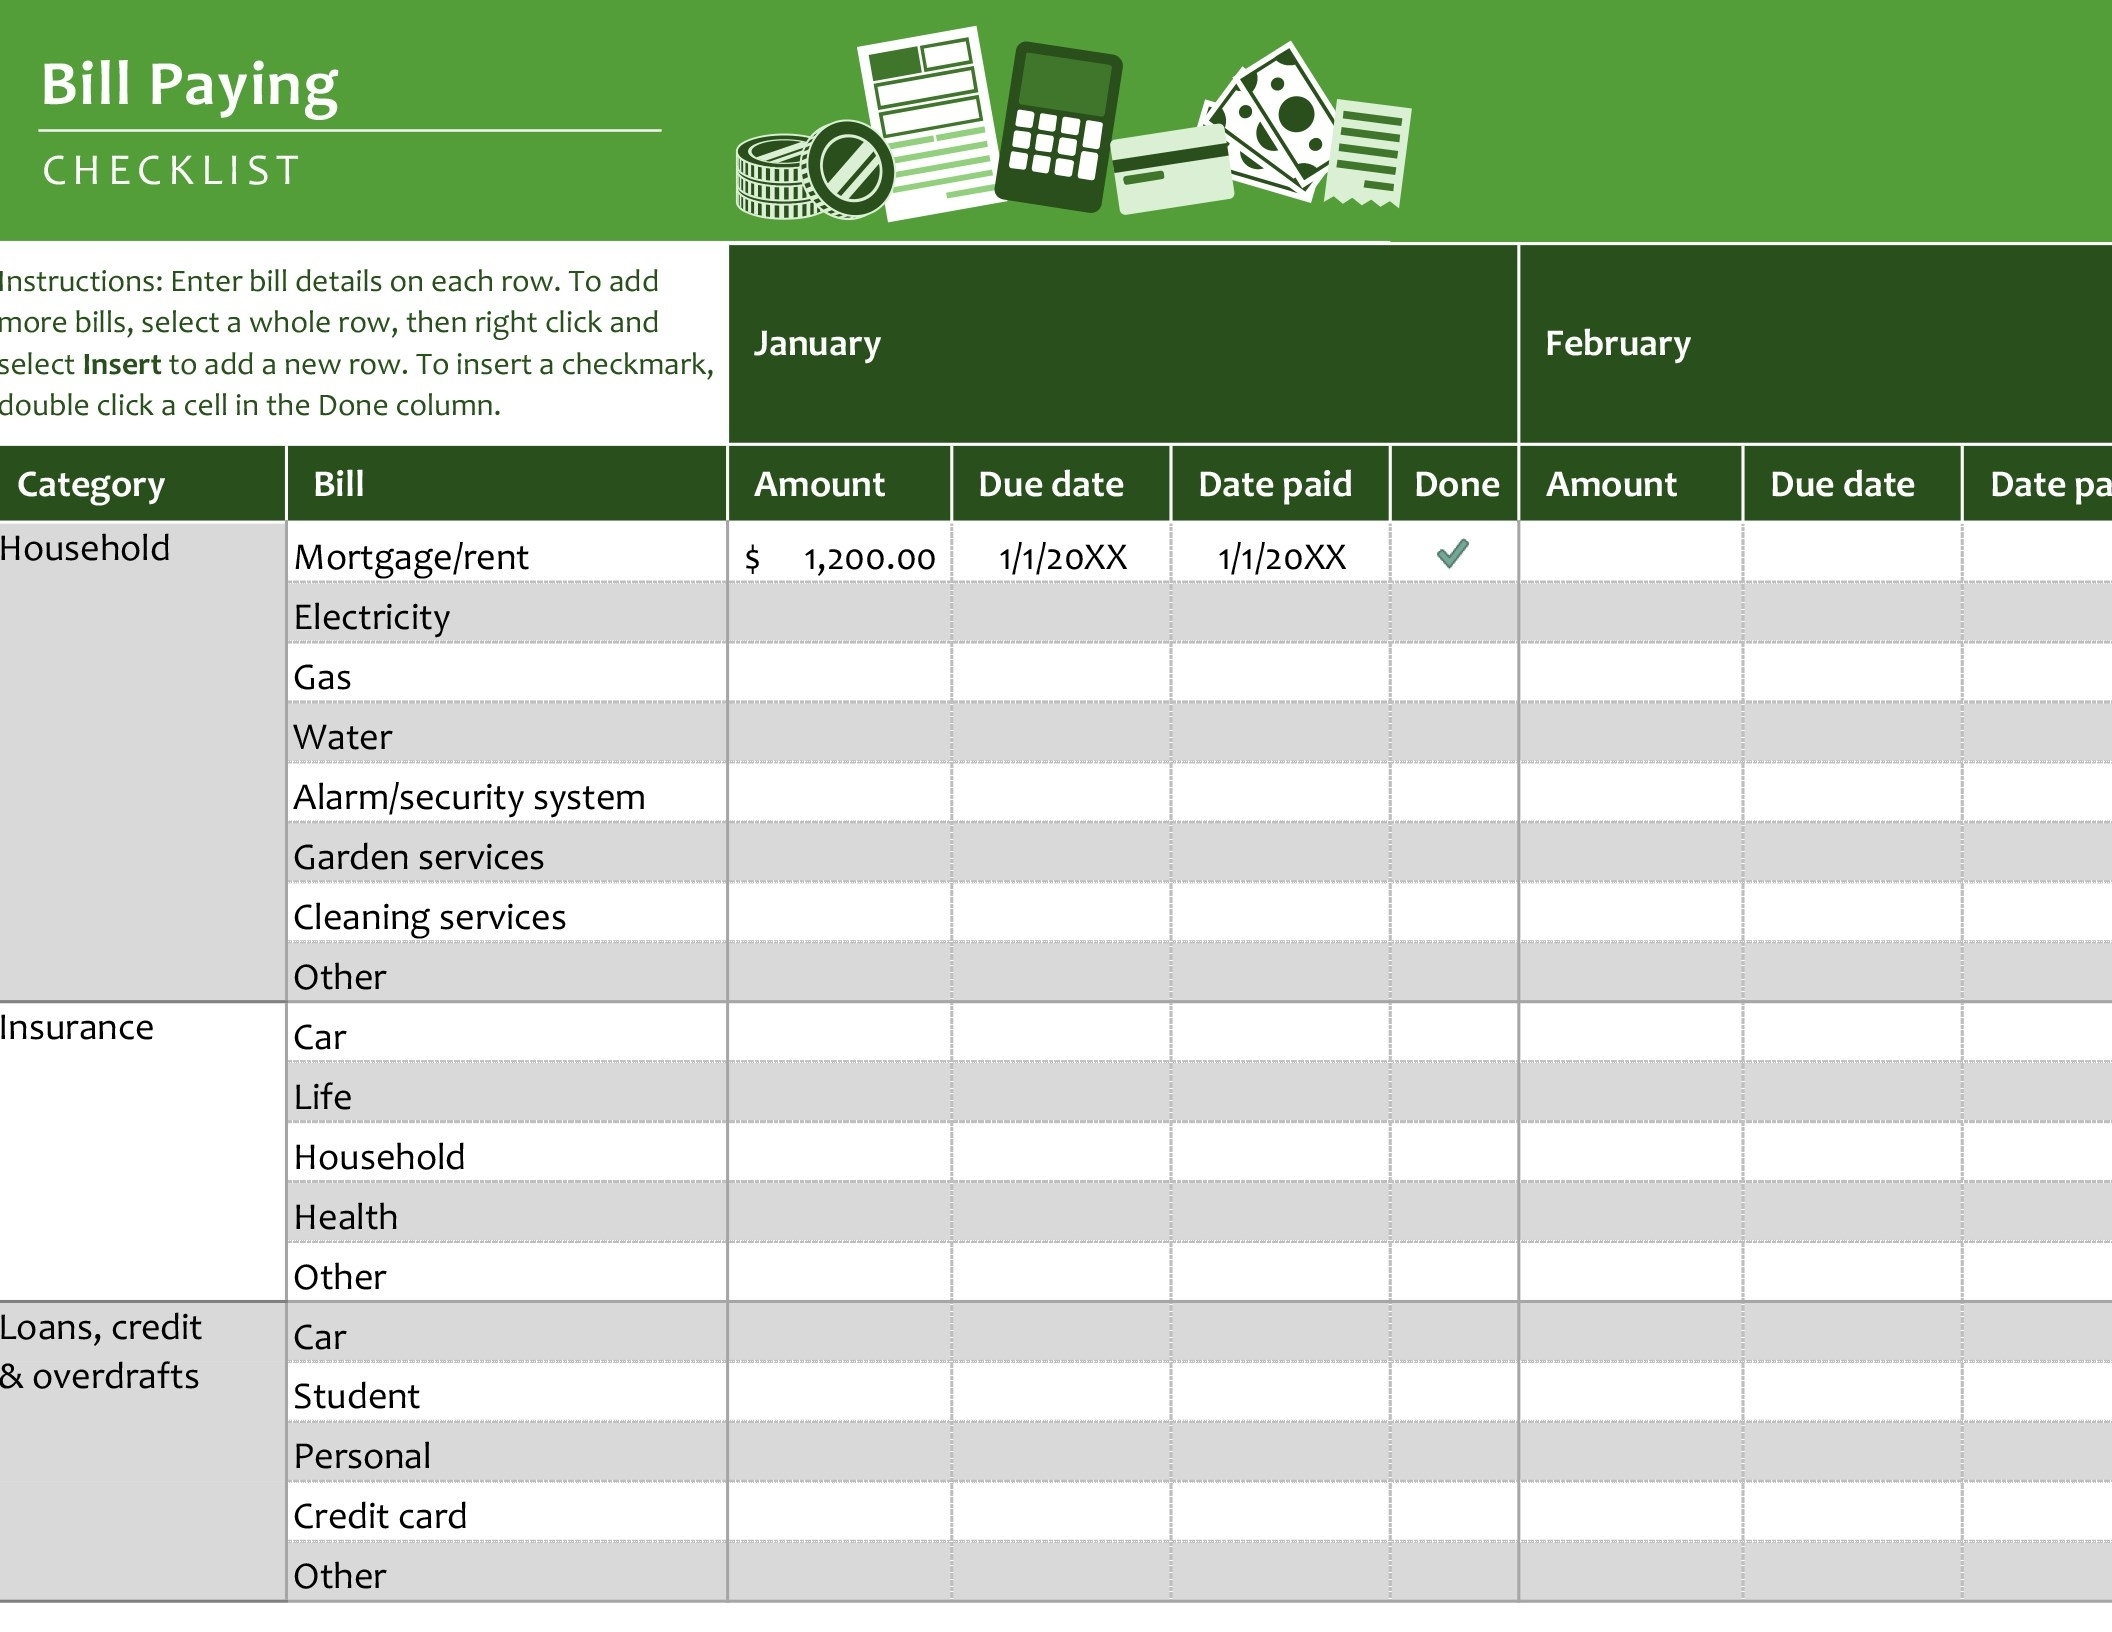 Bill Paying Checklist in Free Monthly Bill Payment Checklist Editable